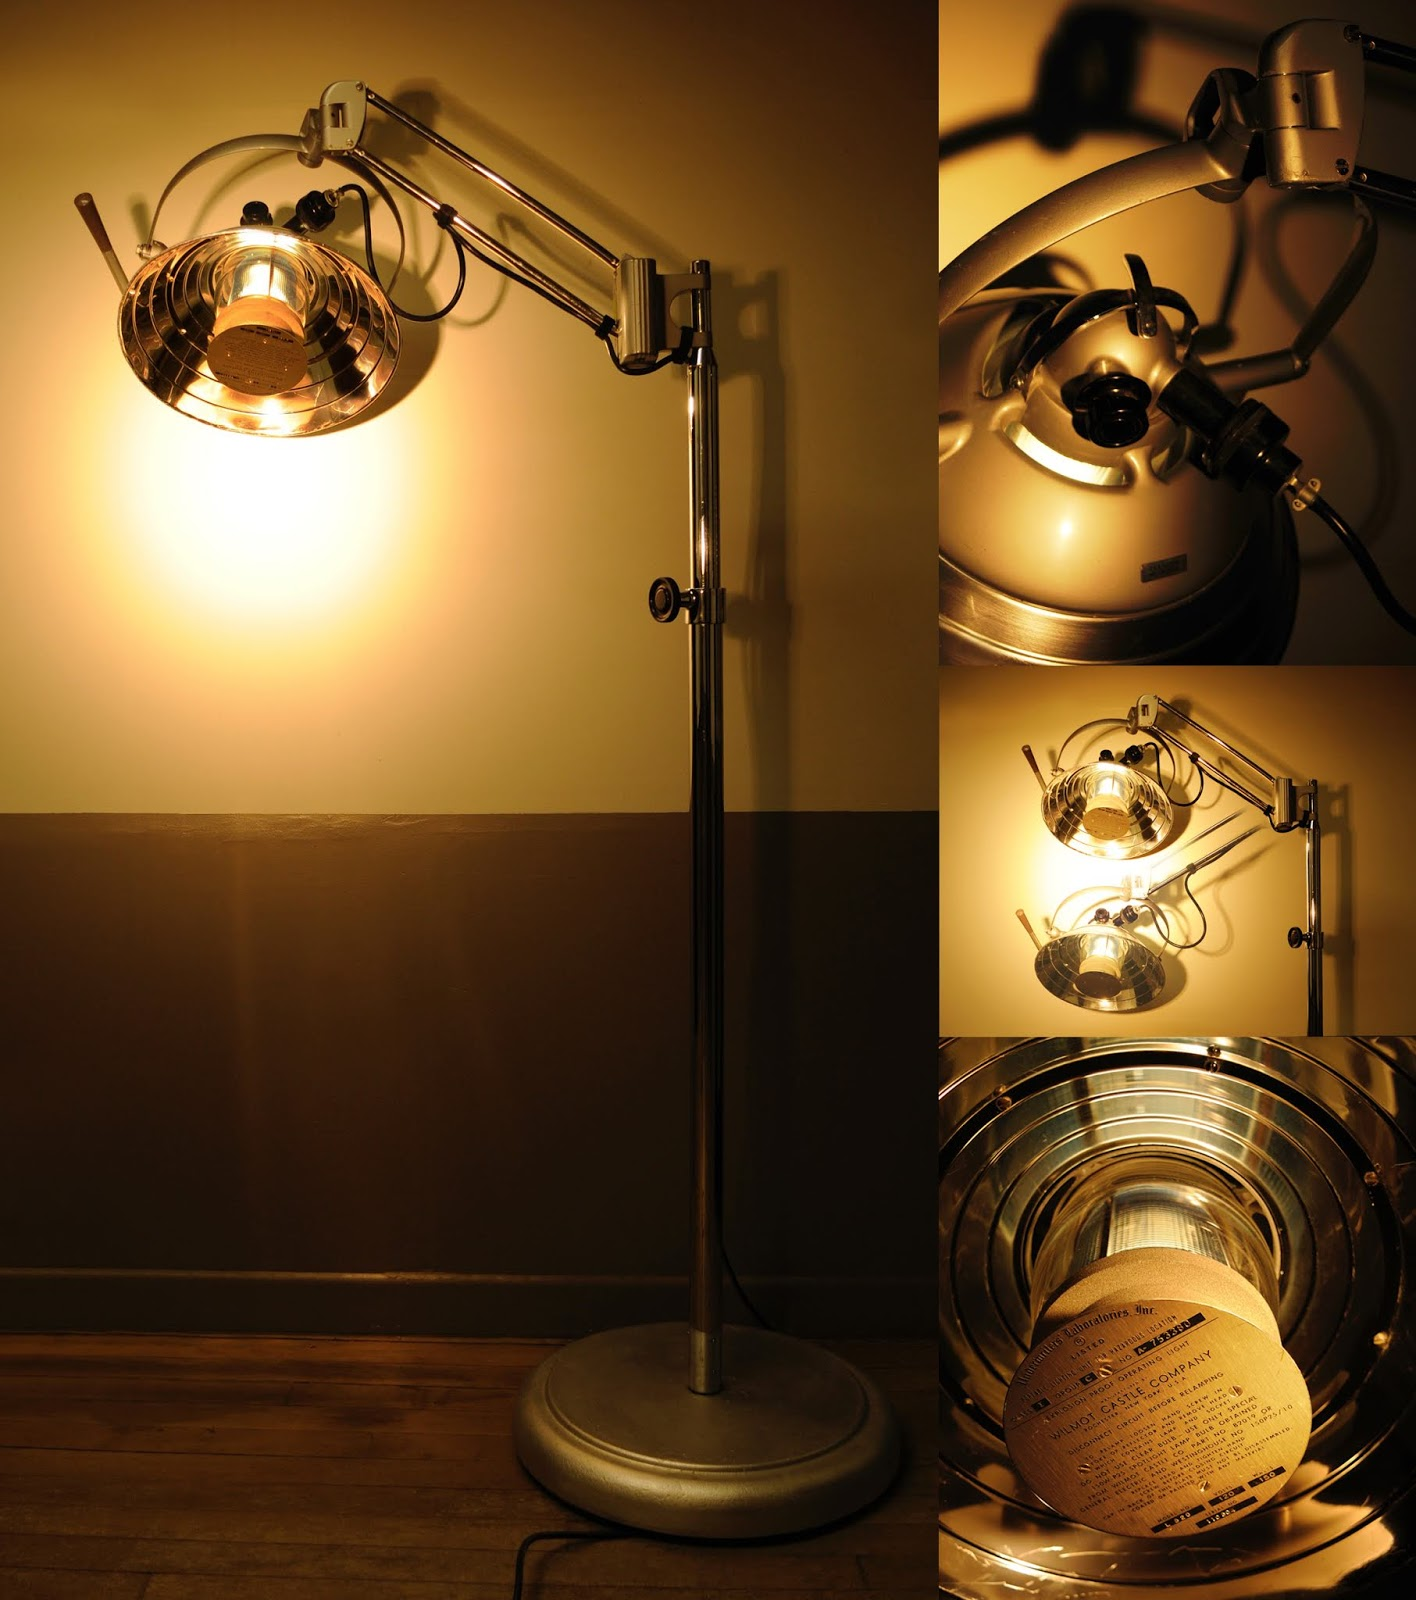 Vintage 1950's Articulated Operating Room Spot Light